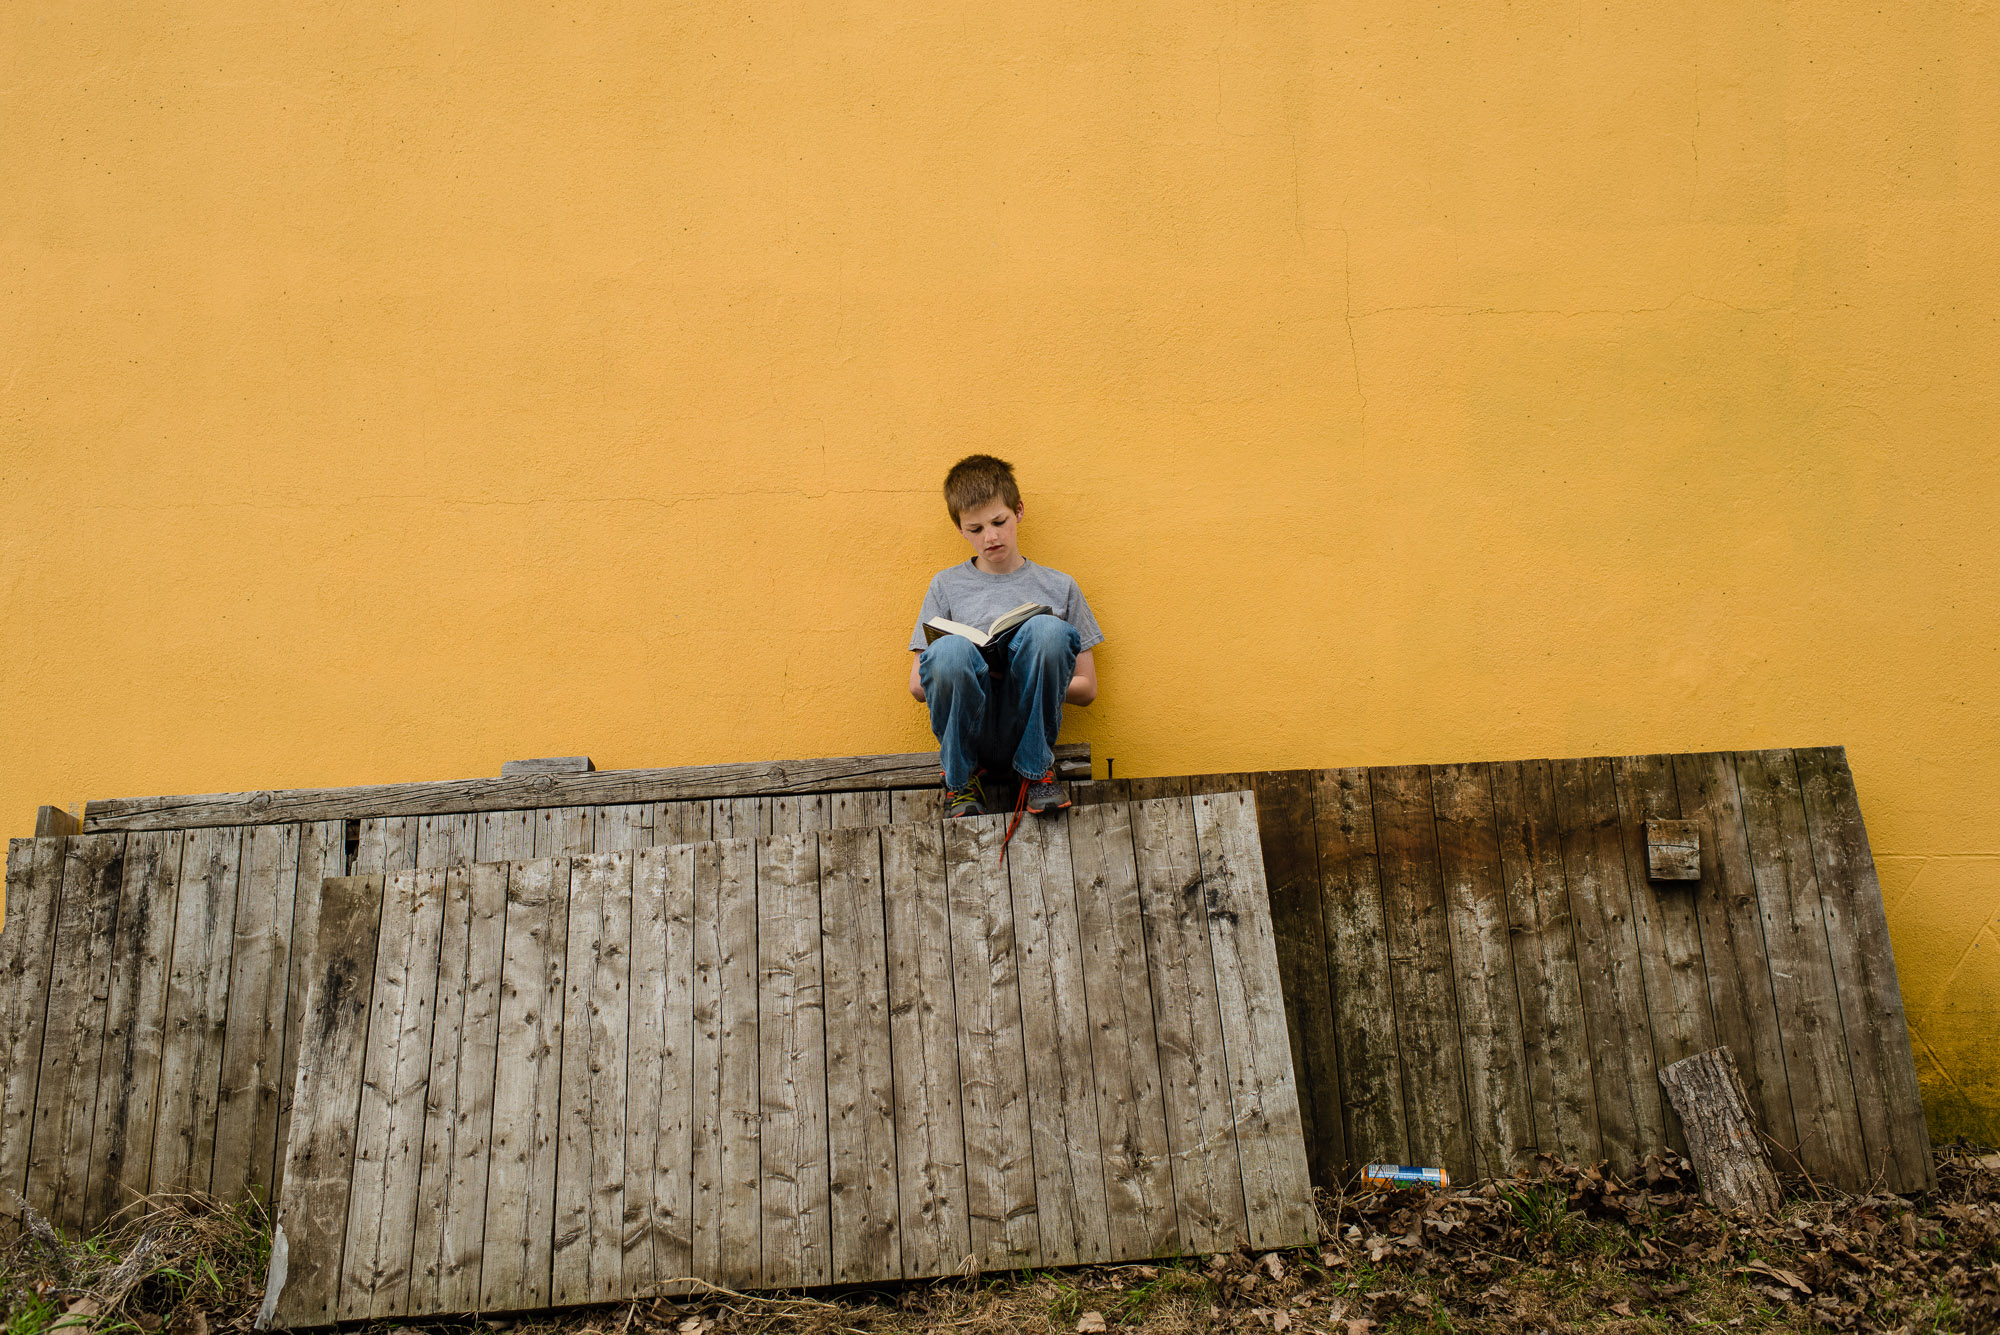 boy reads a book against a yellow wall